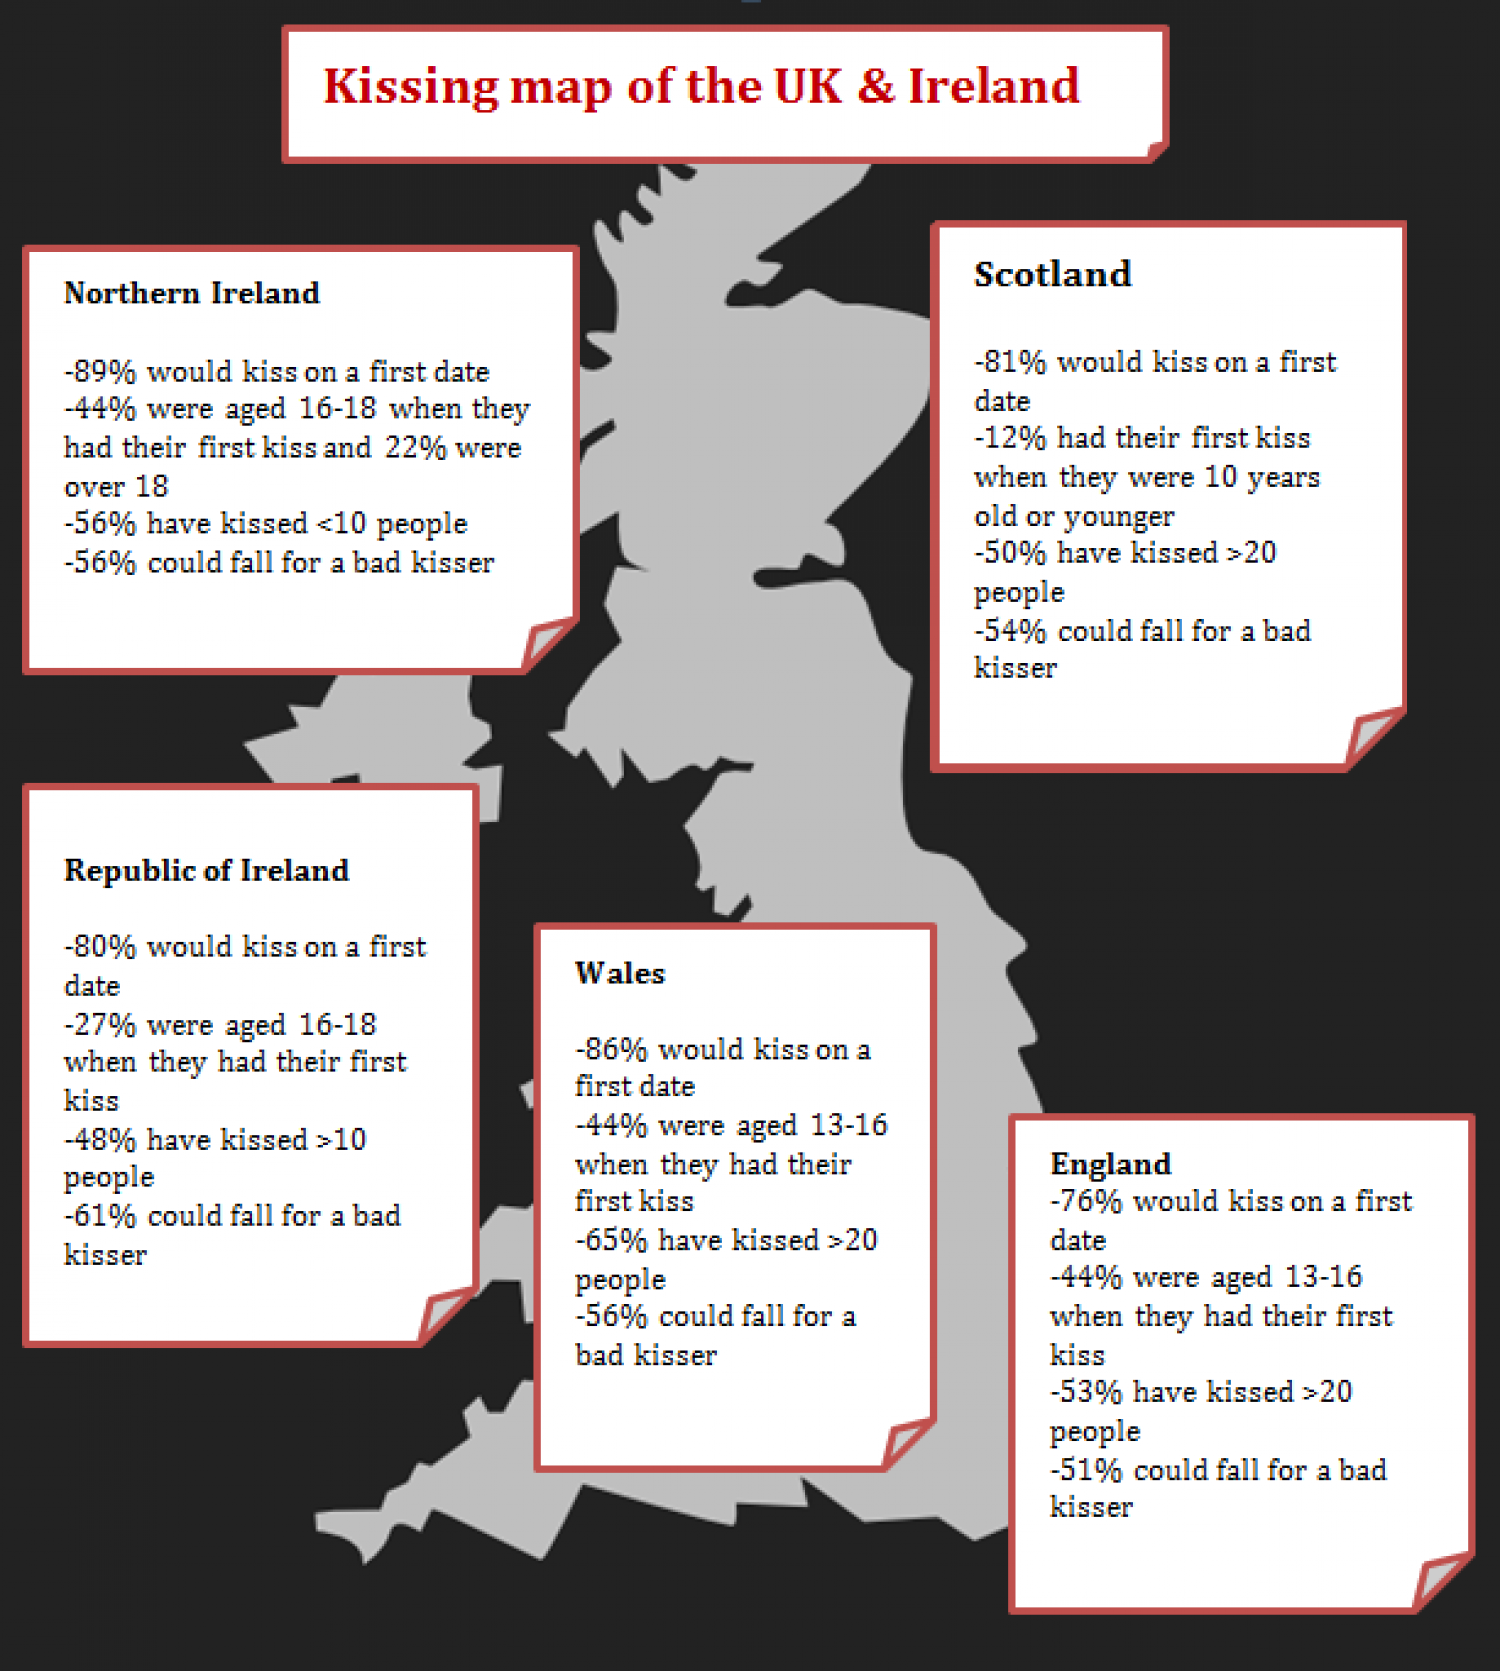 Kissing Map of the UK & Ireland Infographic